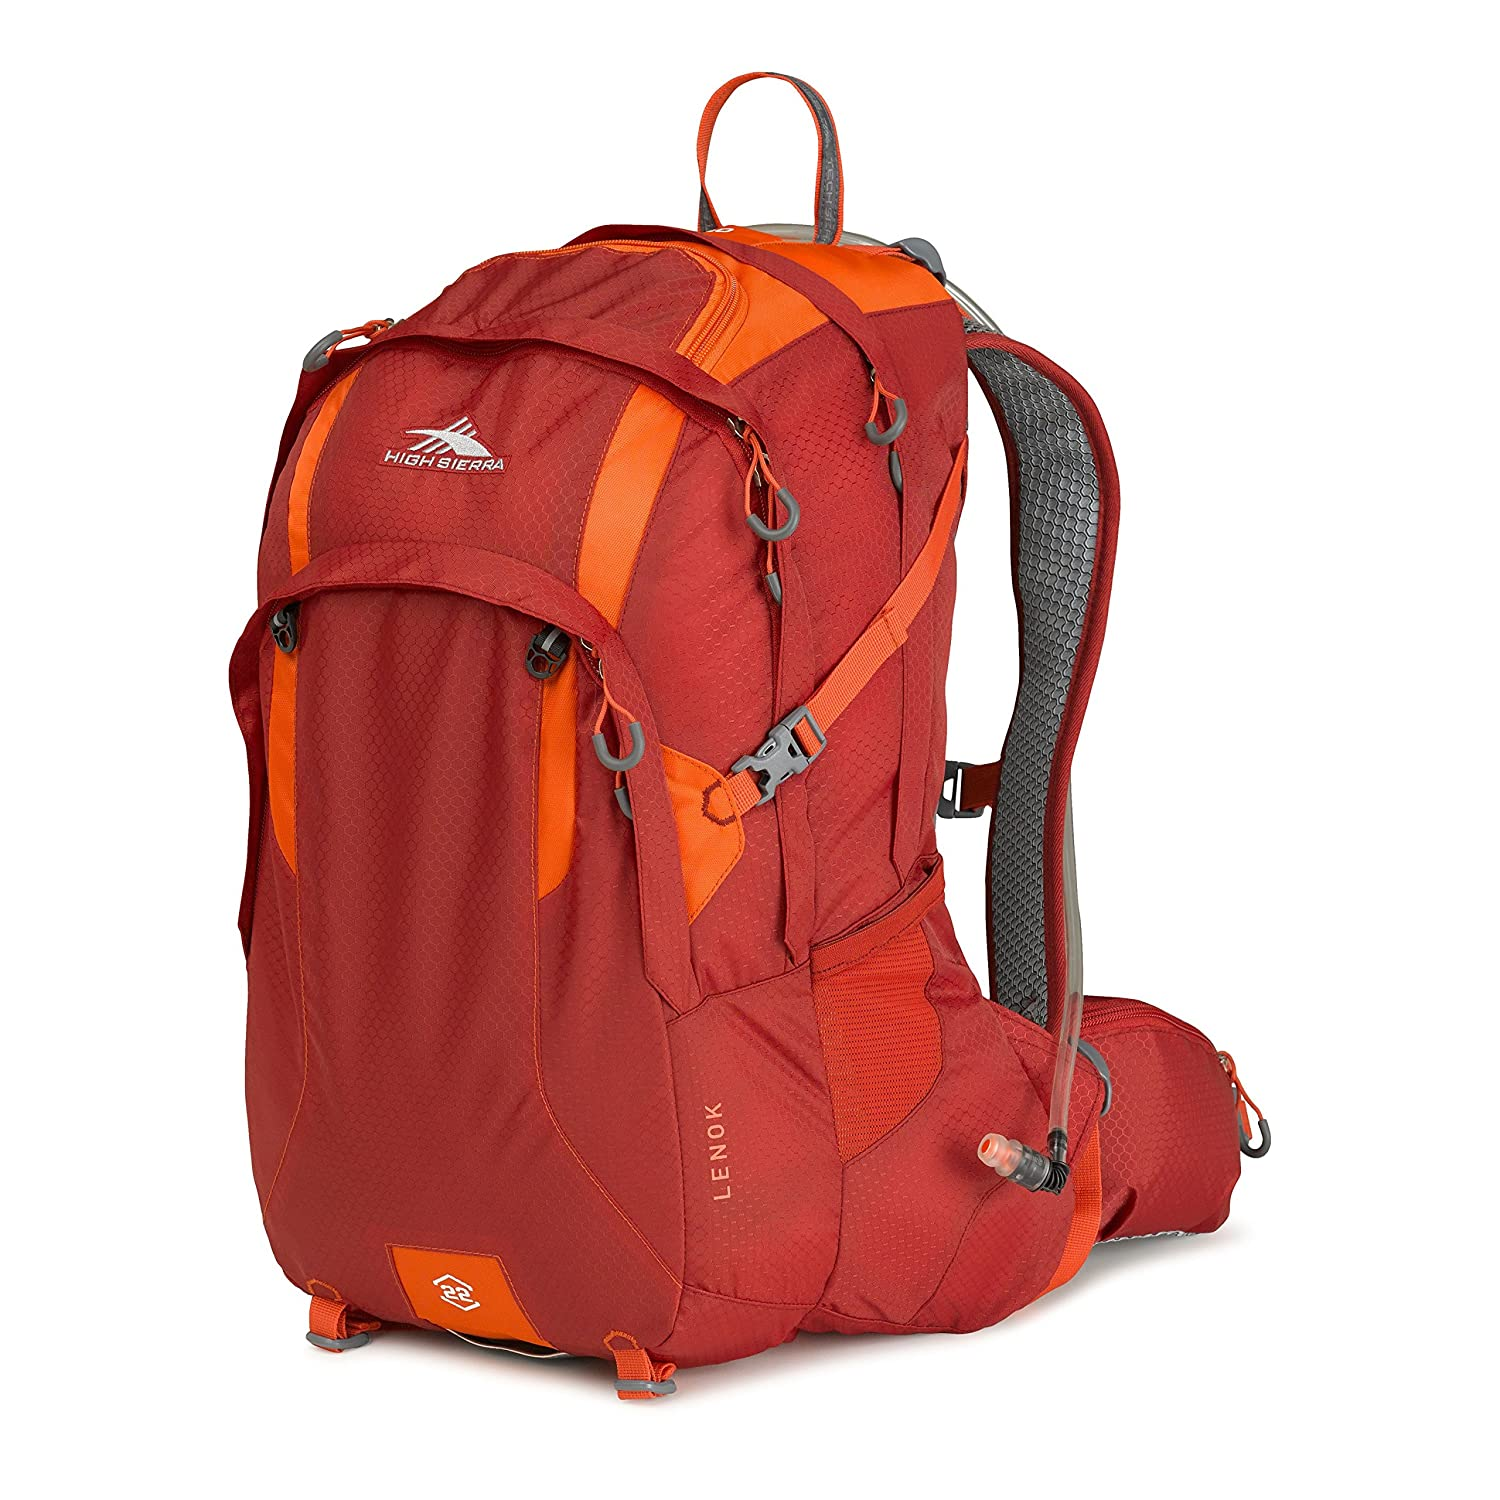 High Sierra Lenok 22L Hydration Pack